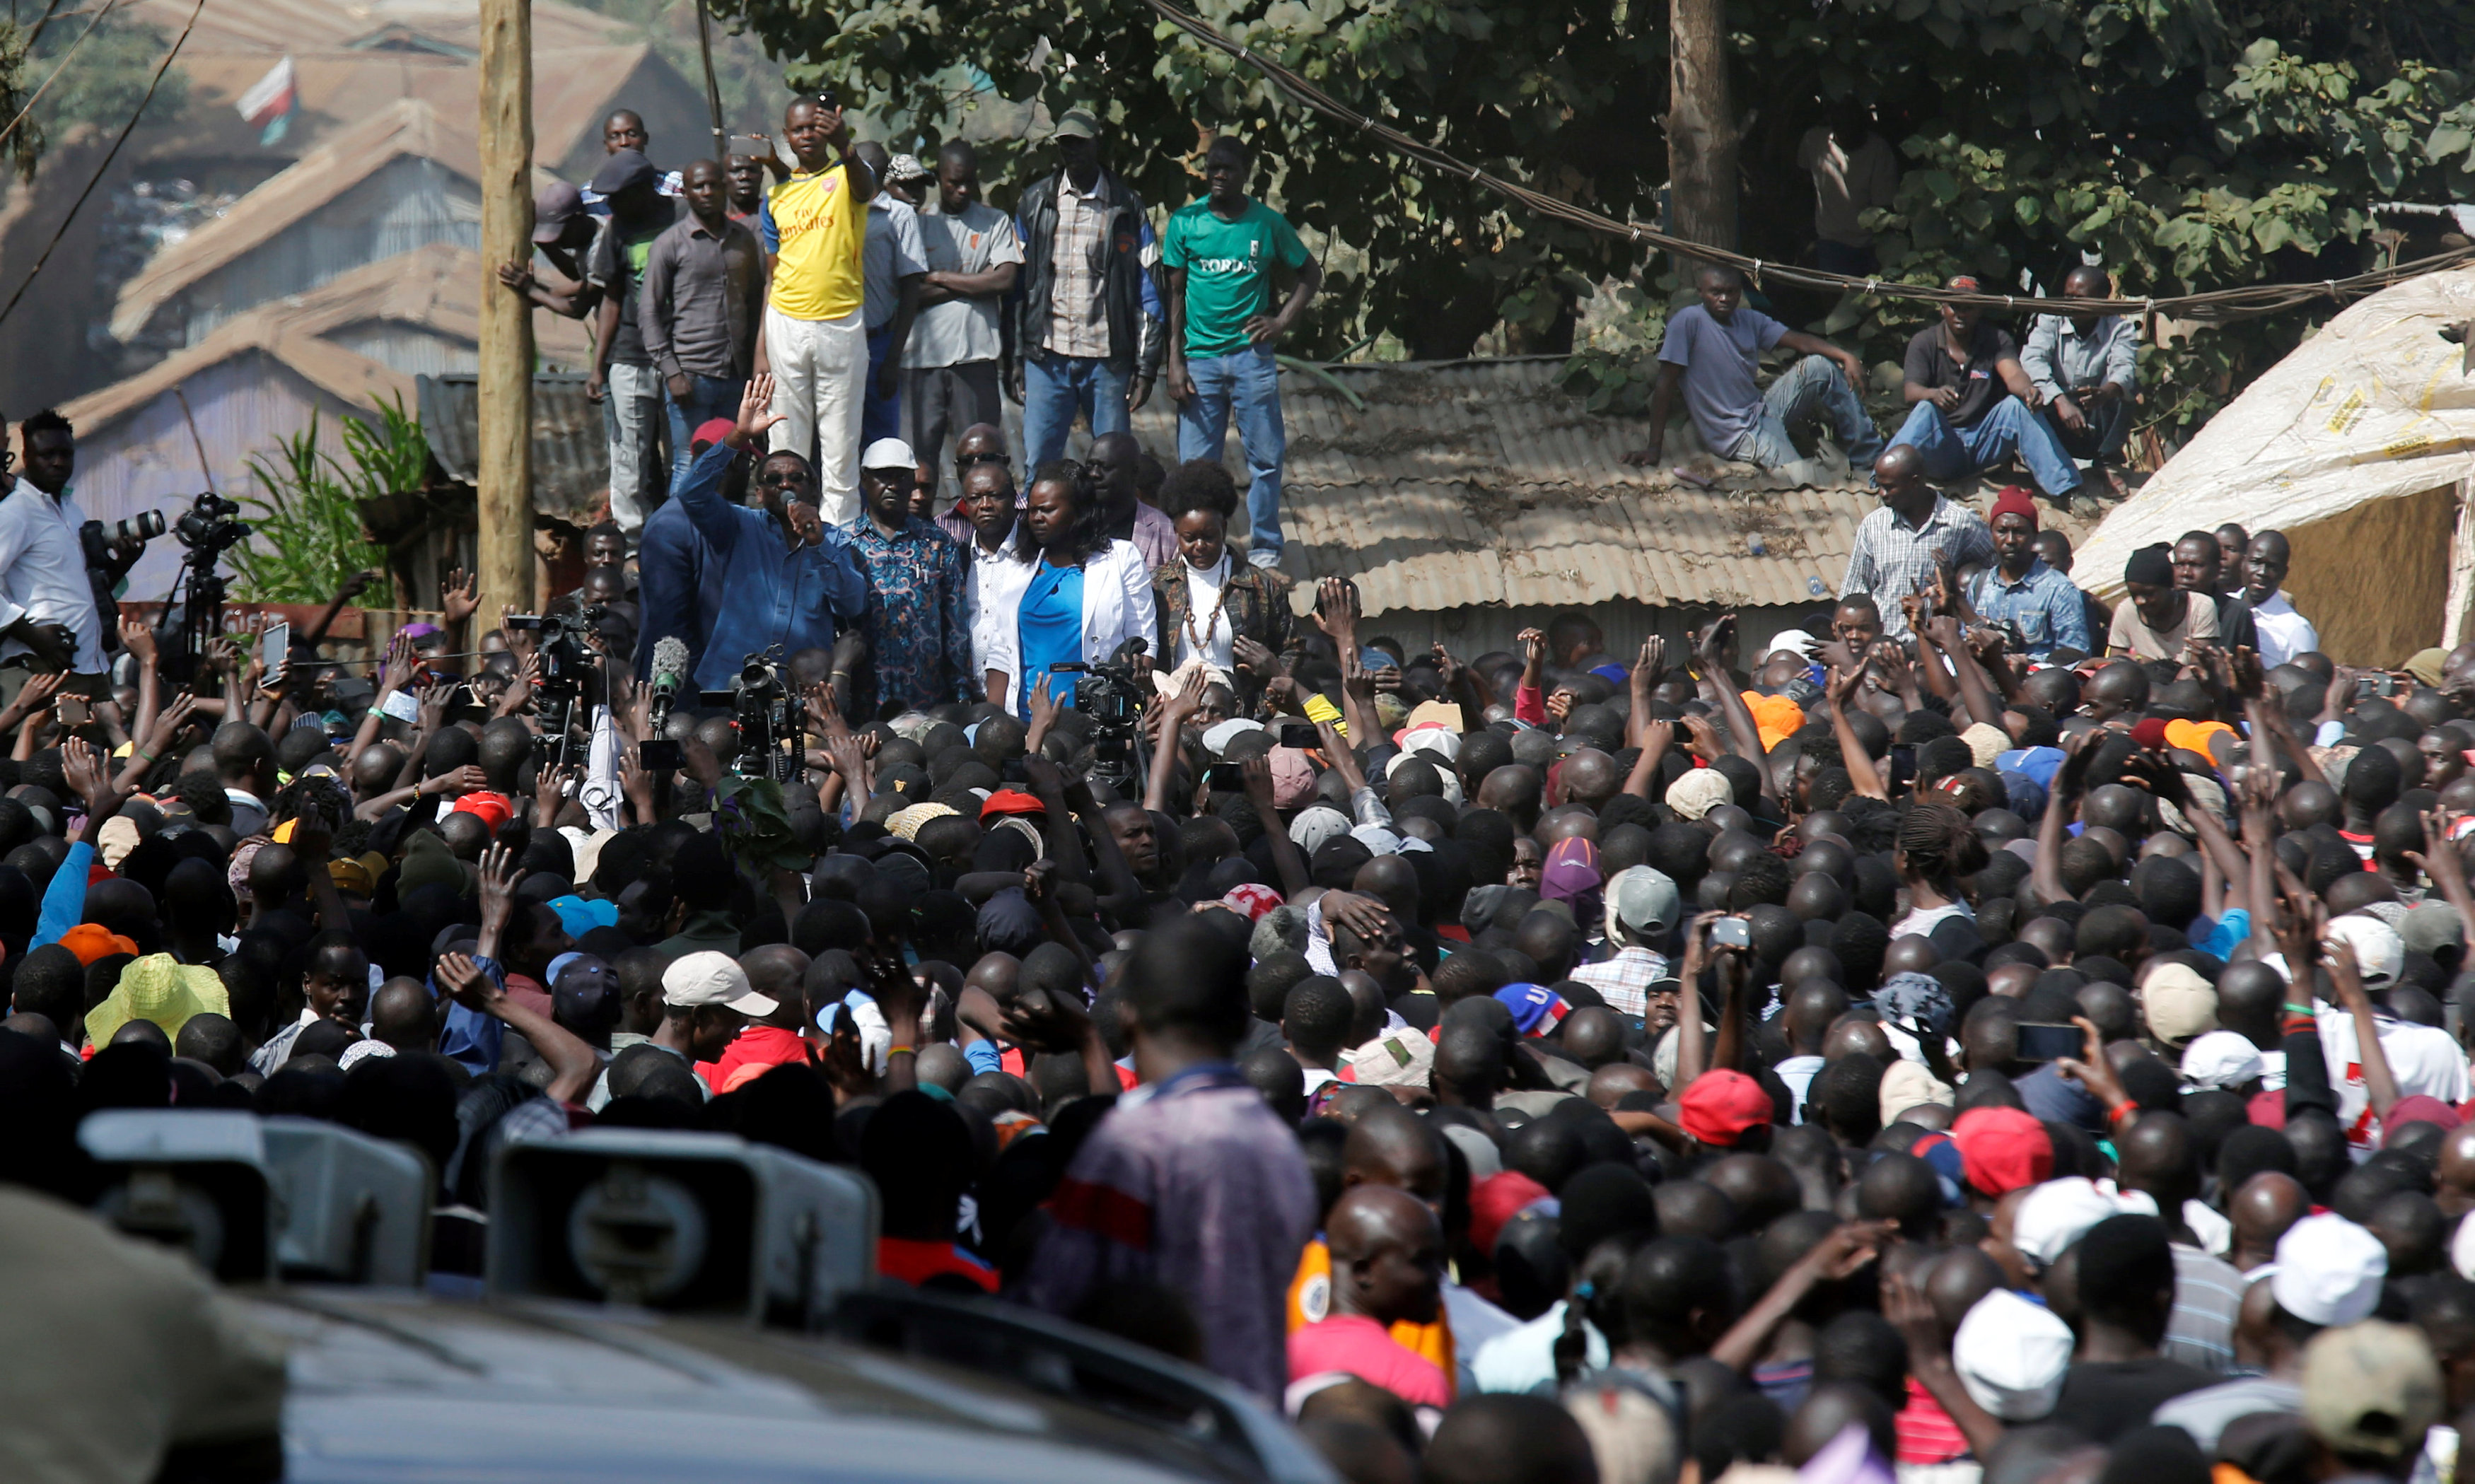 In pictures: Kenya opposition leader holds rally